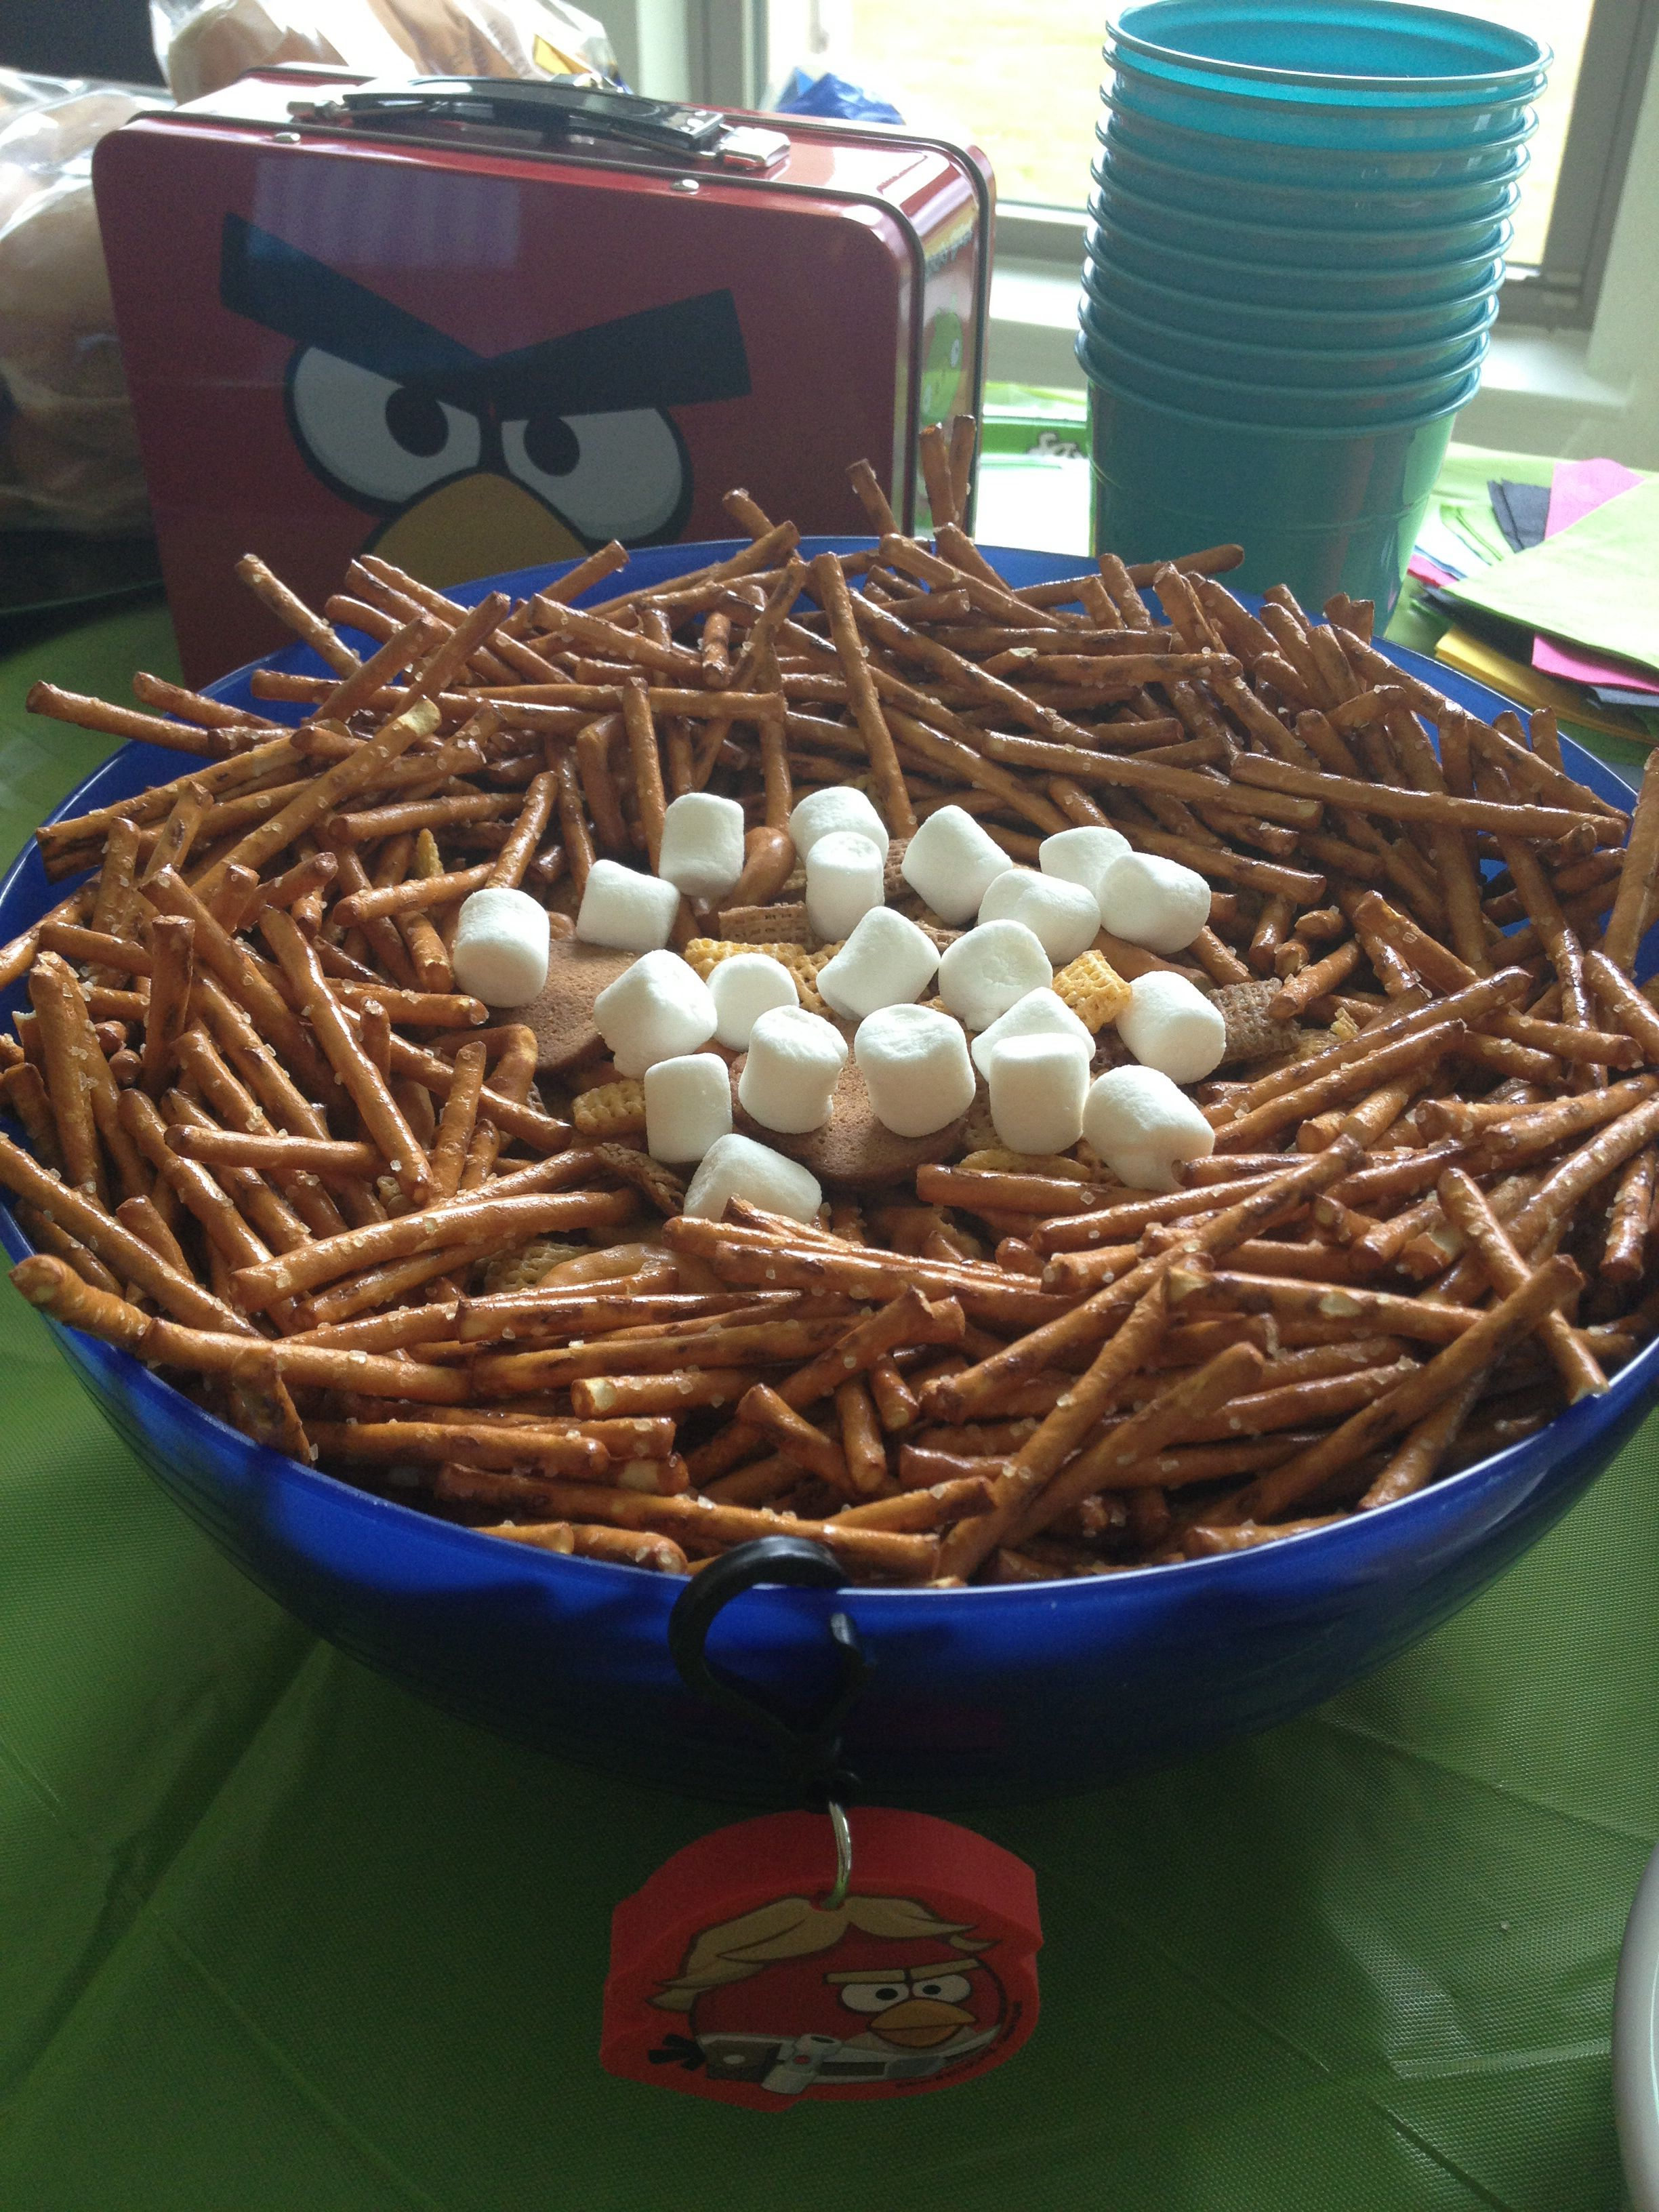 Angry bird party food - bird food chez mix with pretzel sticks and marshmallows for eggs in the nest